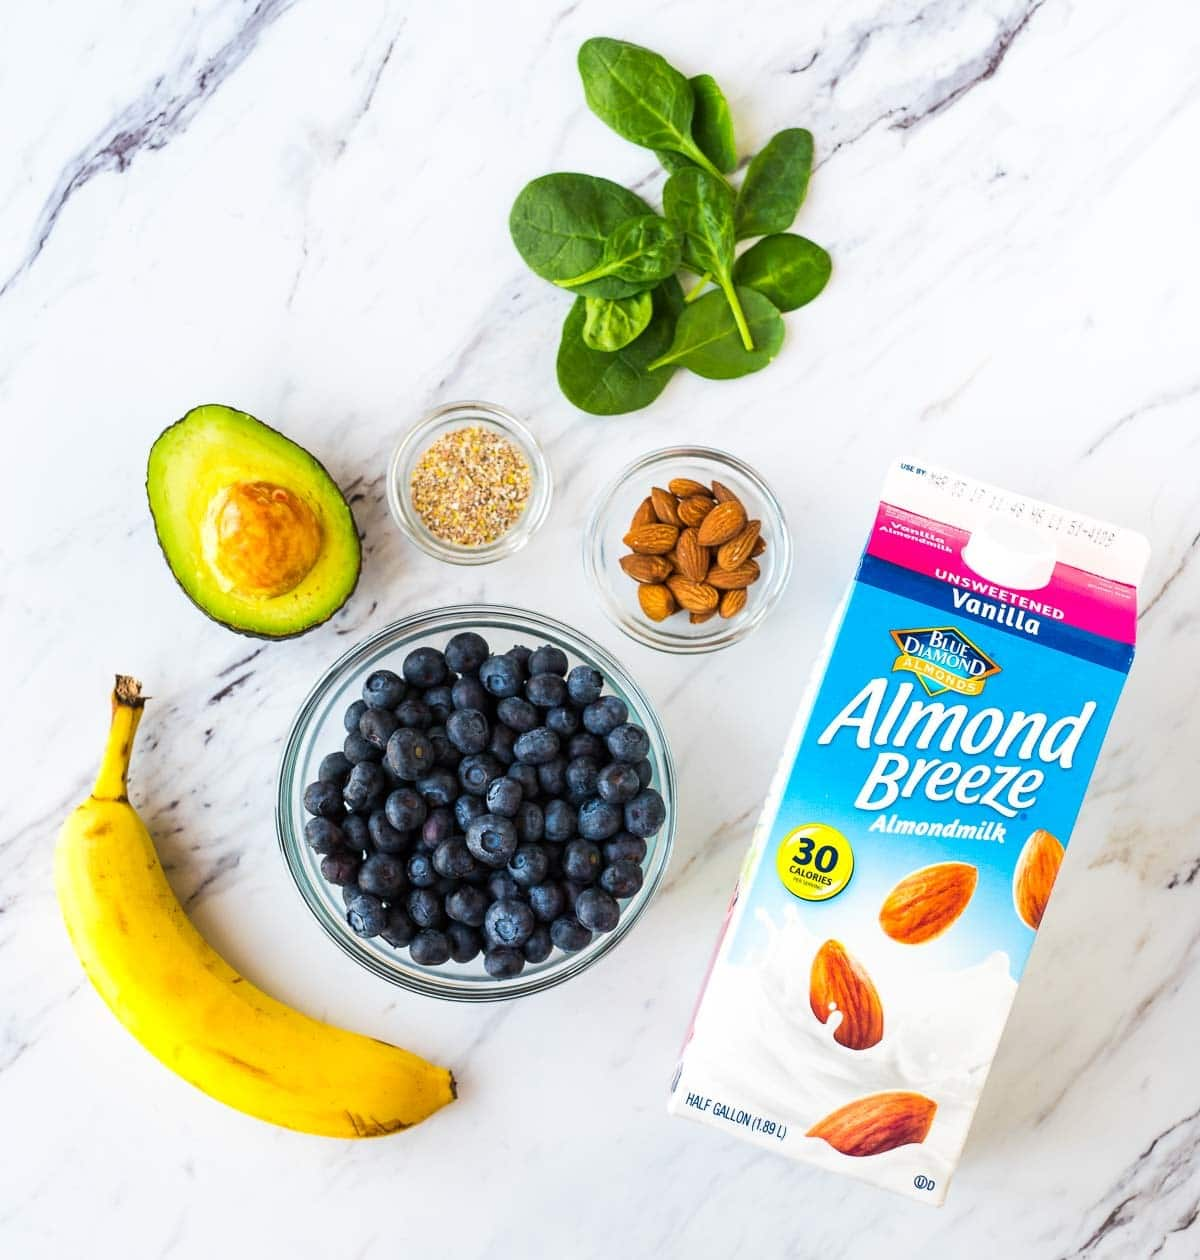 Ingredients to make a hydrating blueberry banana avocado smoothie recipe